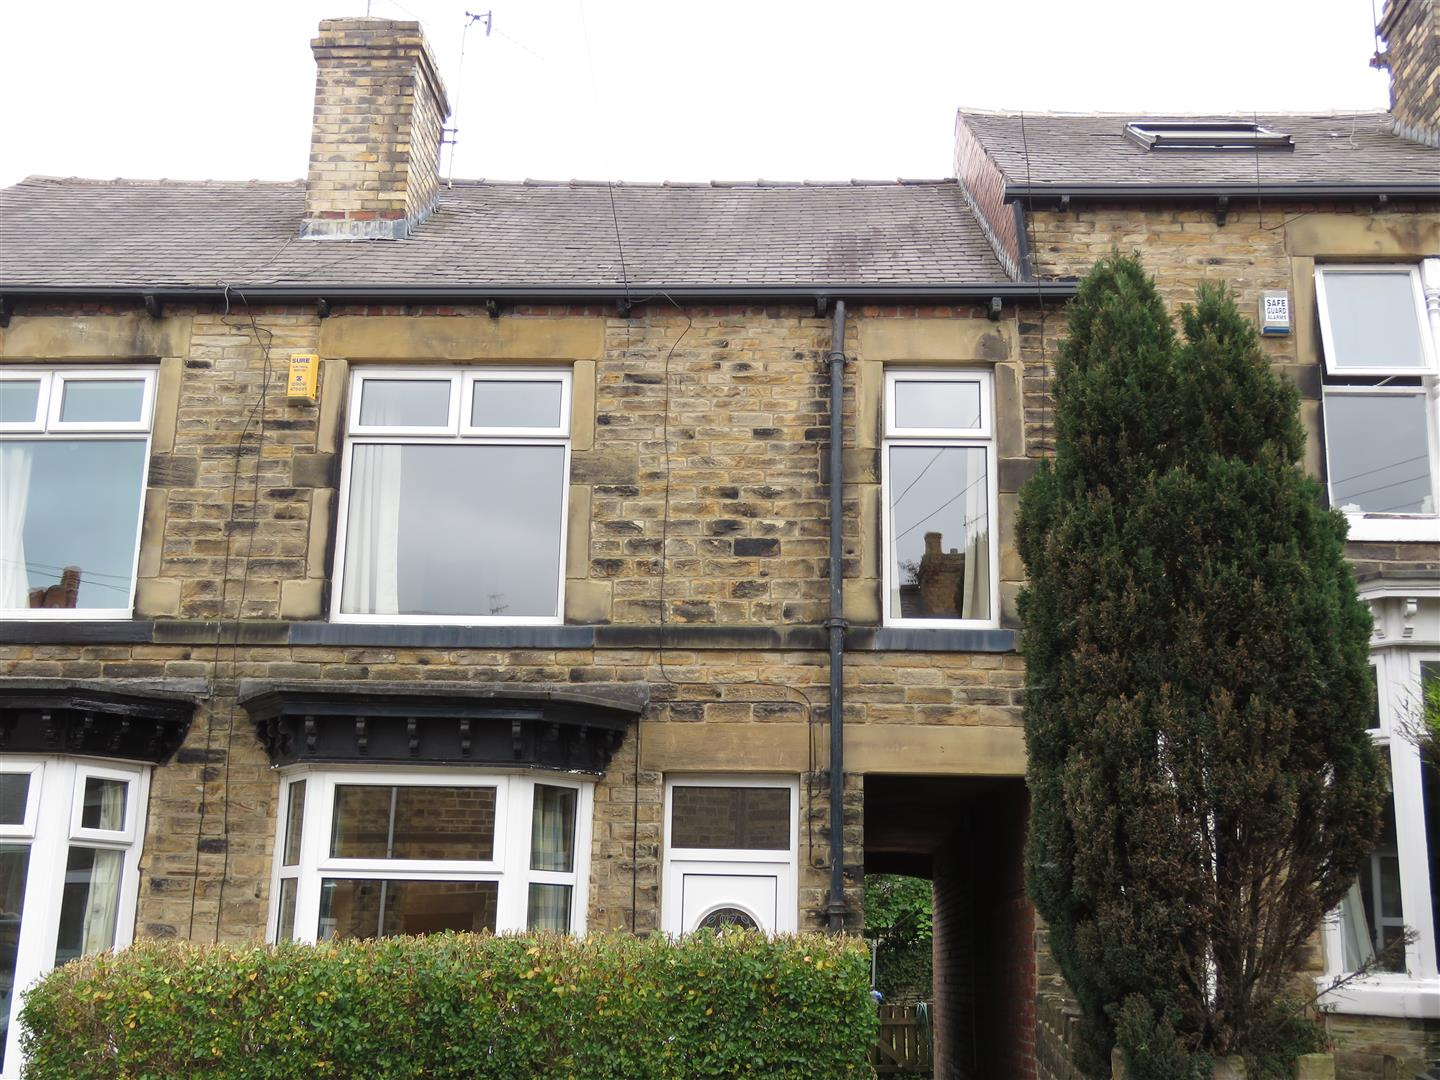 117 Forres RoadCrookesSheffield